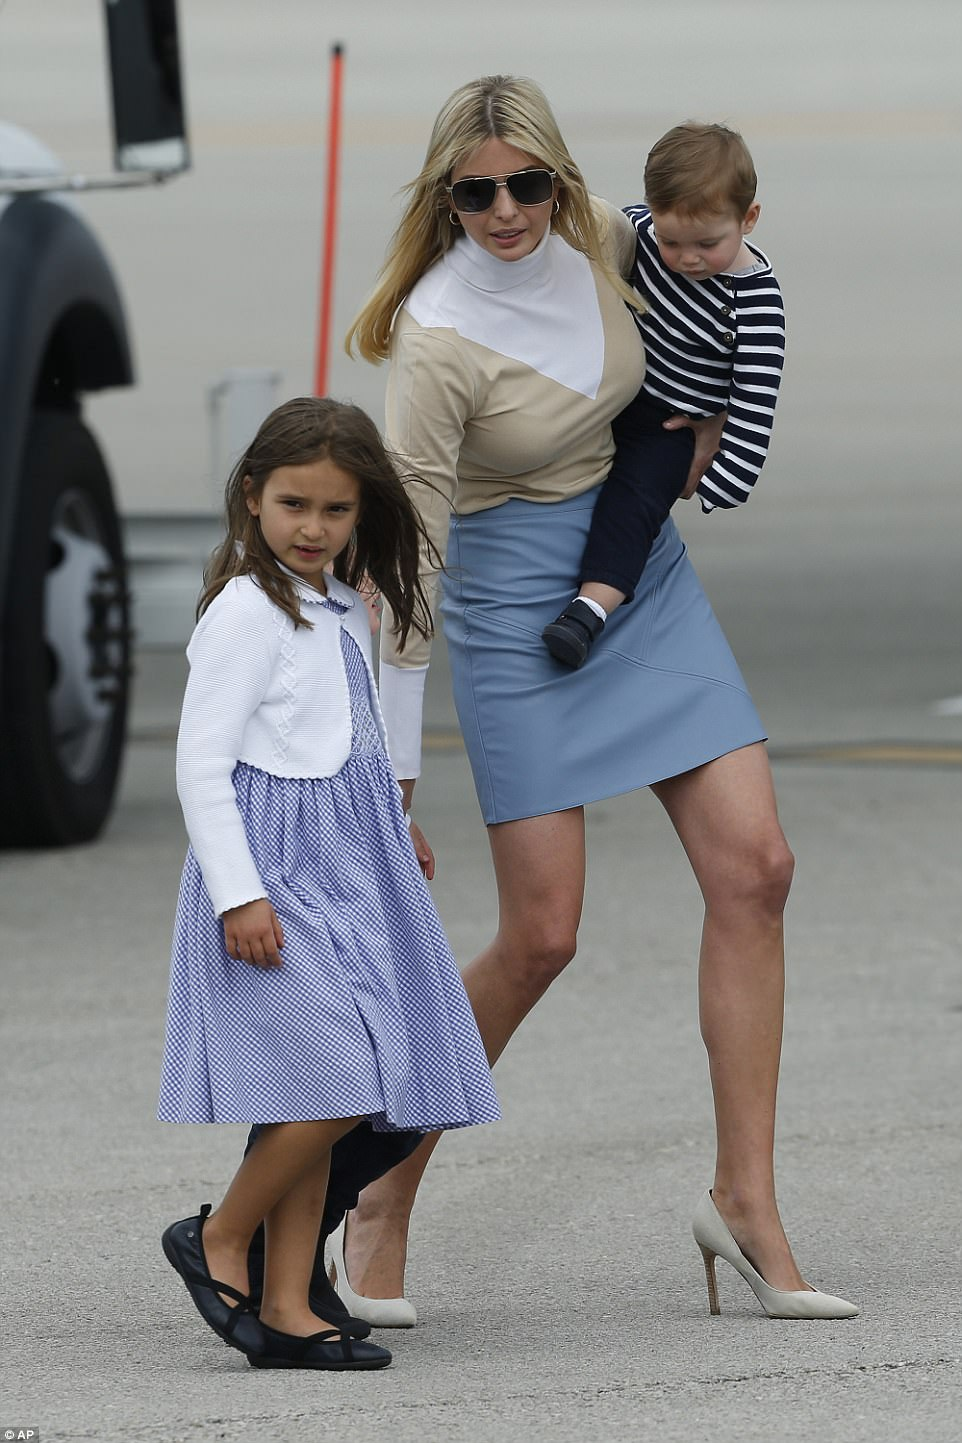 Ivanka and her family are also in Florida for the weekend, flying down on Air Force One as well